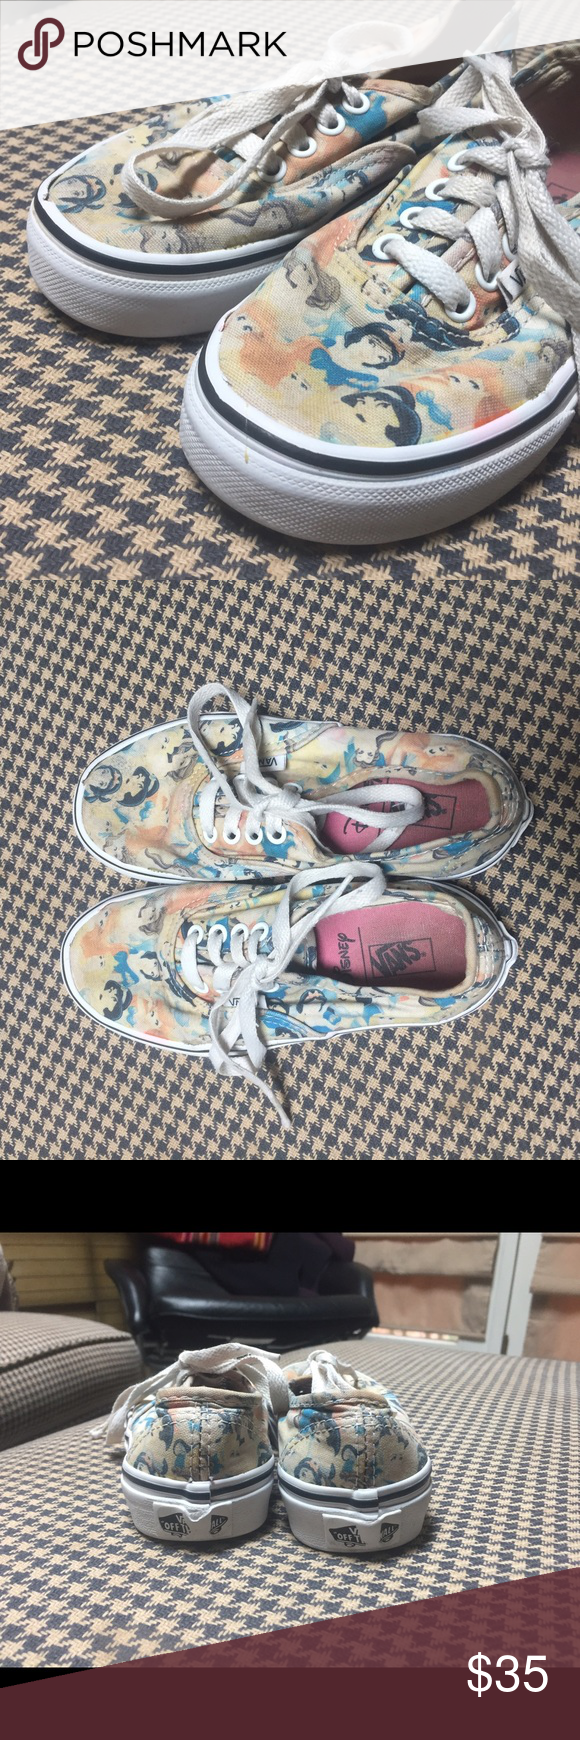 Pair of Used Youth Disney Princess Vans size 13 This is a used pair of rare youth Disney vans with ties. They are faded but still have lots of wear in them! Youth size 13 Vans Shoes Sneakers